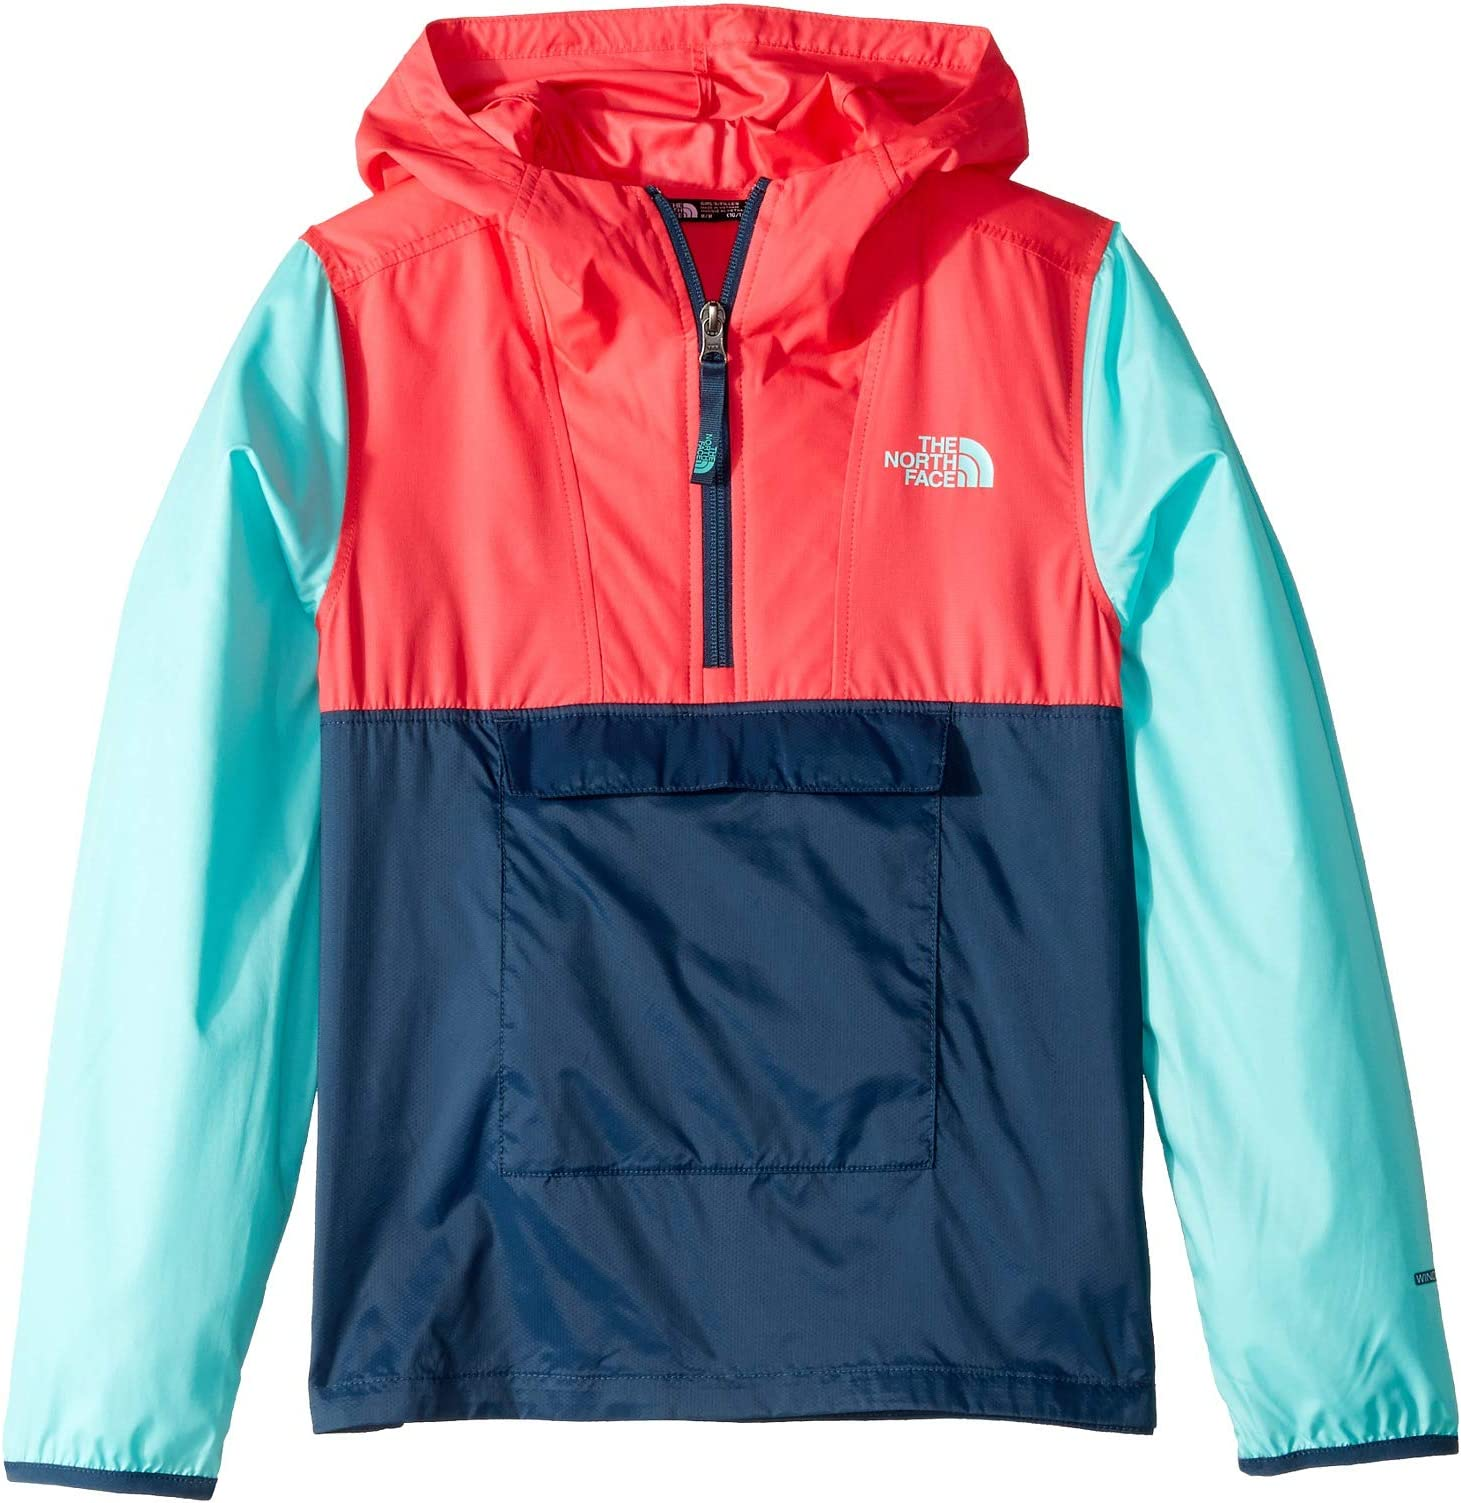 a2afaac92 The North Face Outerwear, Shoes, Bags, Clothing | Zappos.com